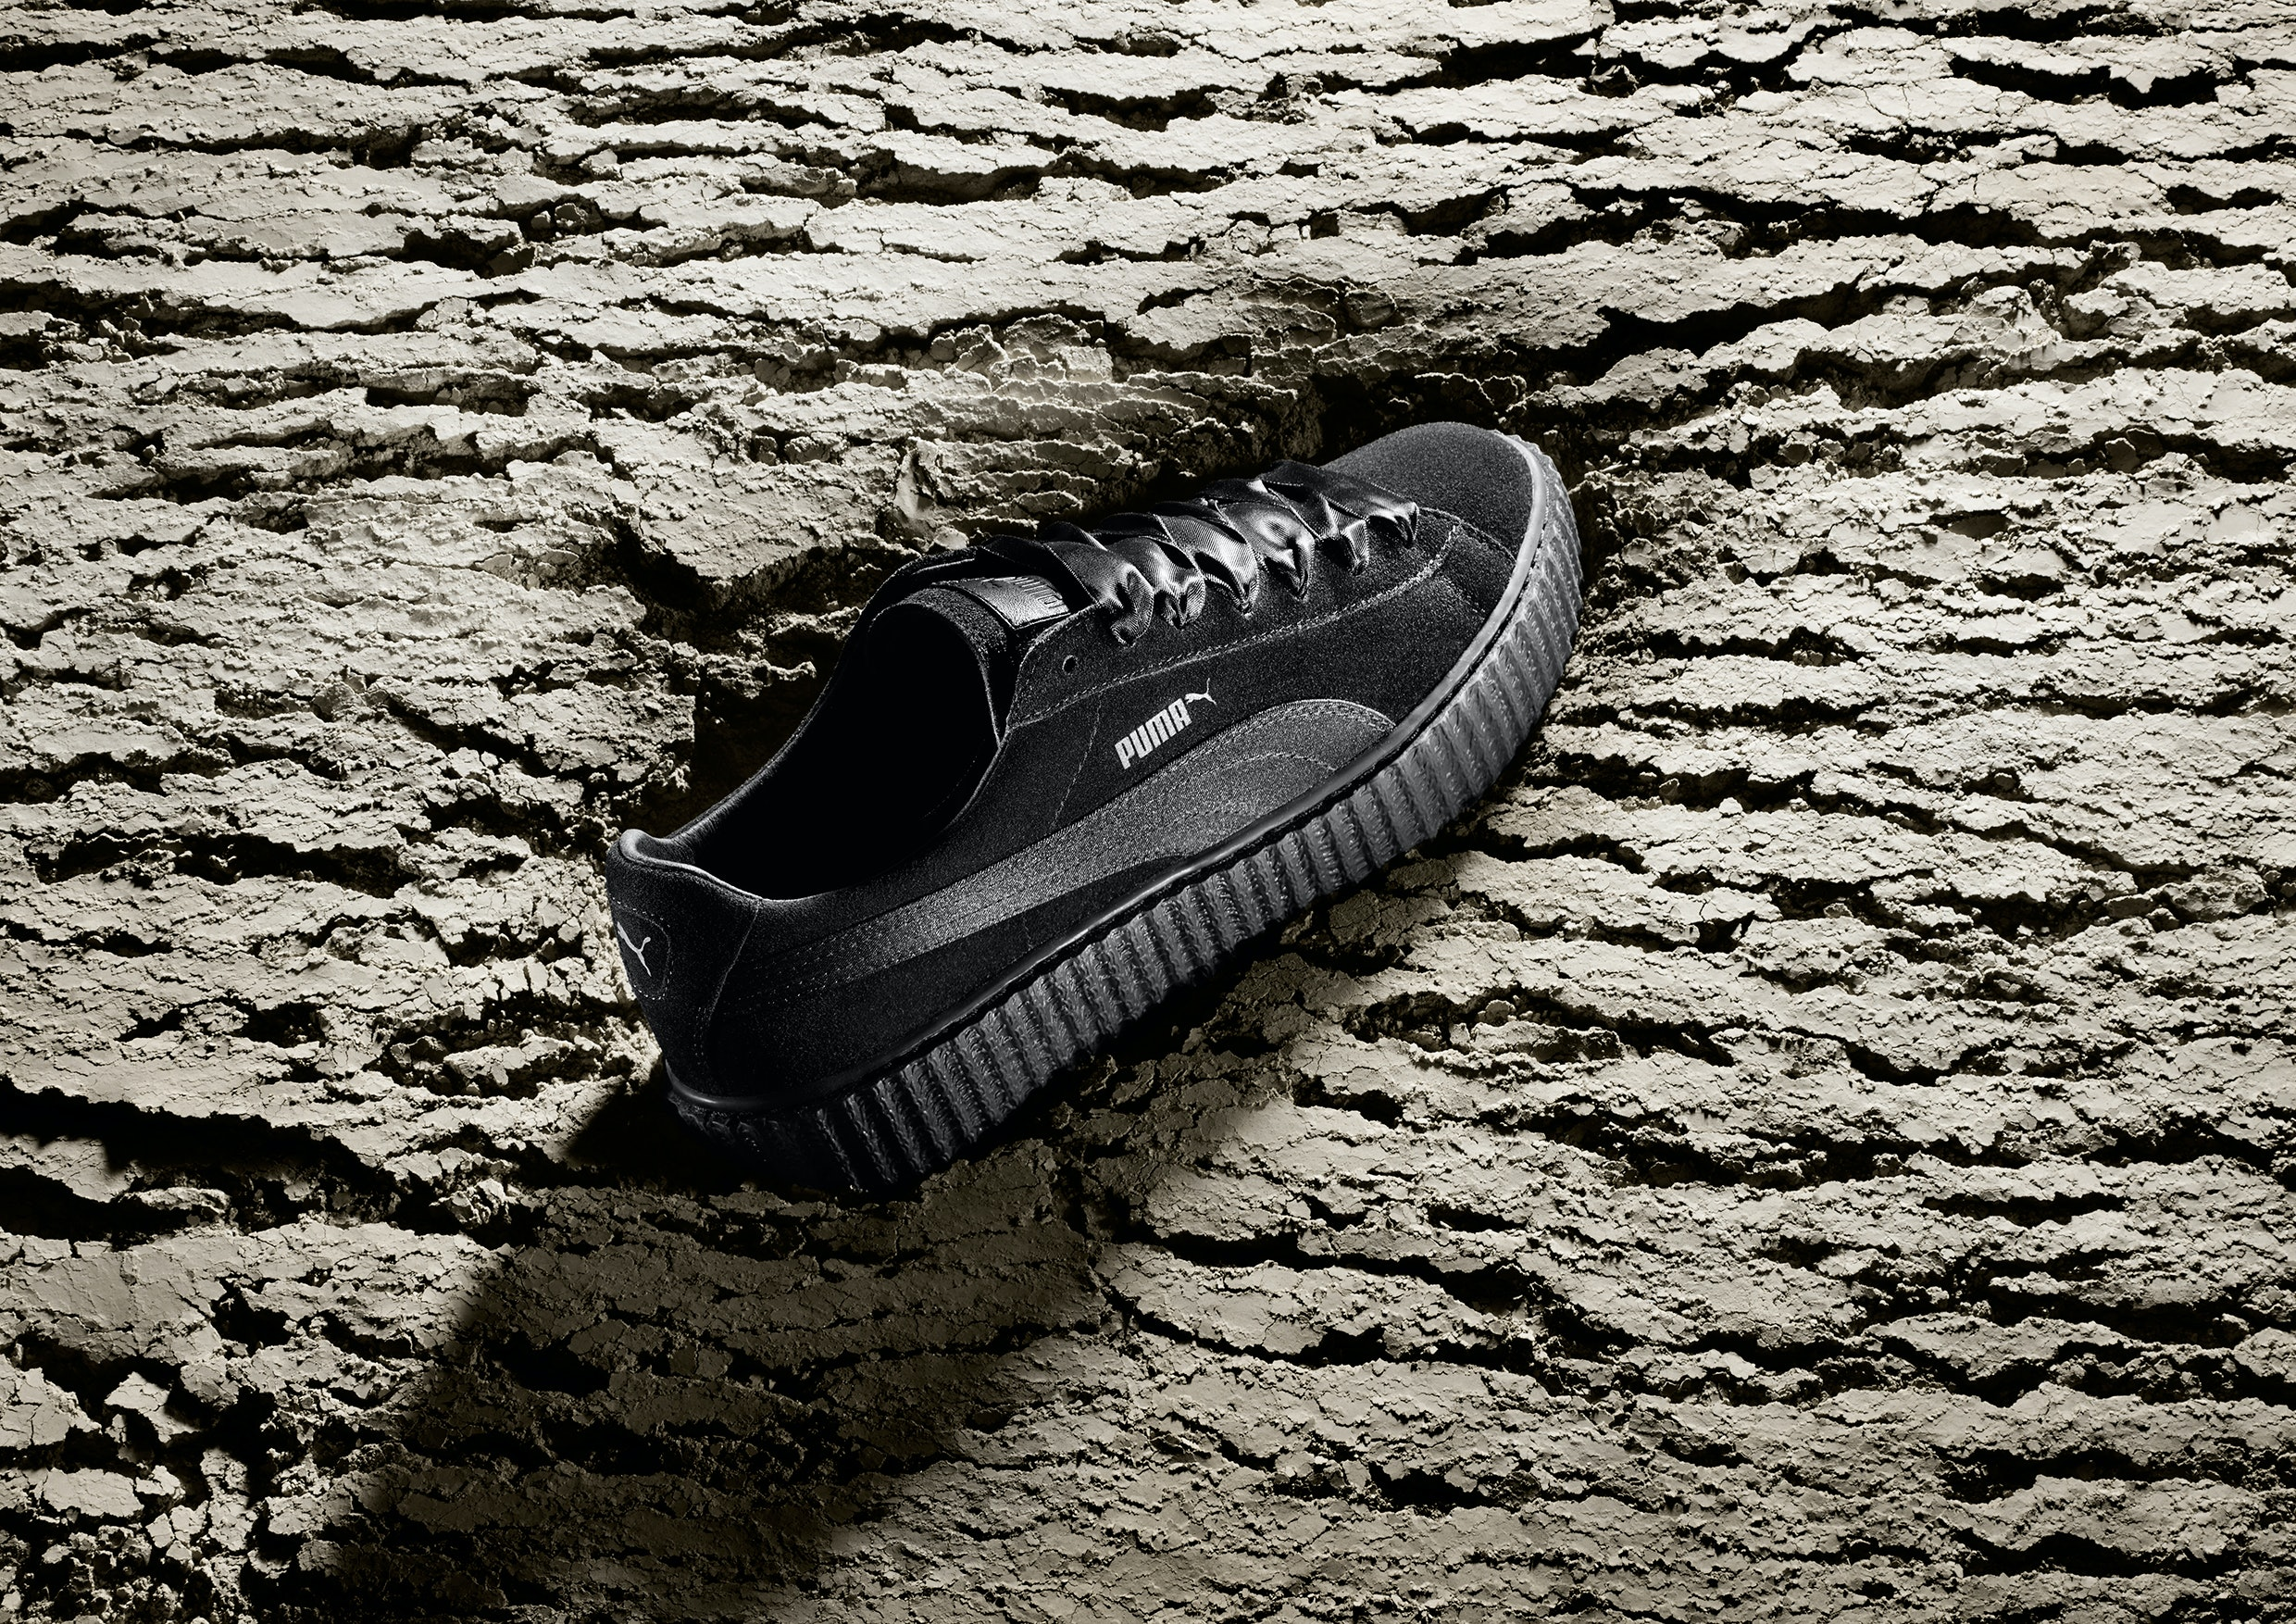 official photos cfddd cfe82 Are Rihanna Puma Creepers Sold Out? Here's The Scoop On ...